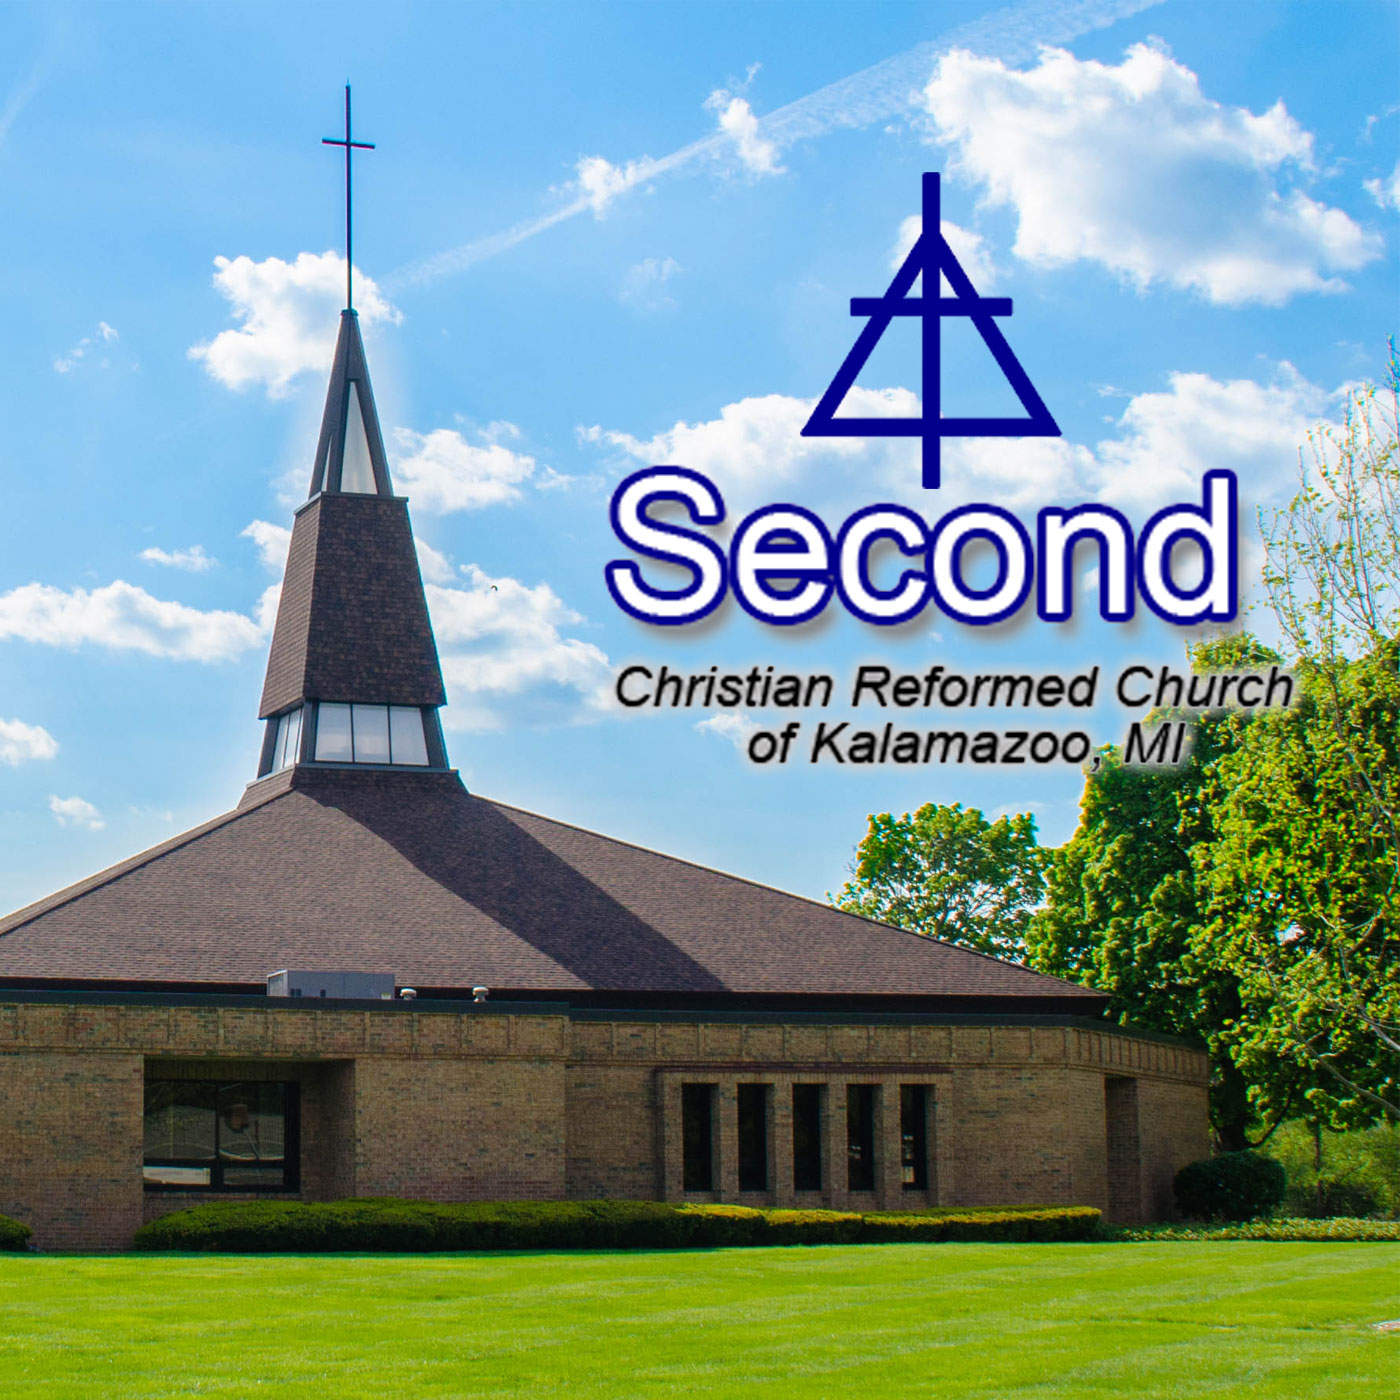 Second CRC of Kalamazoo